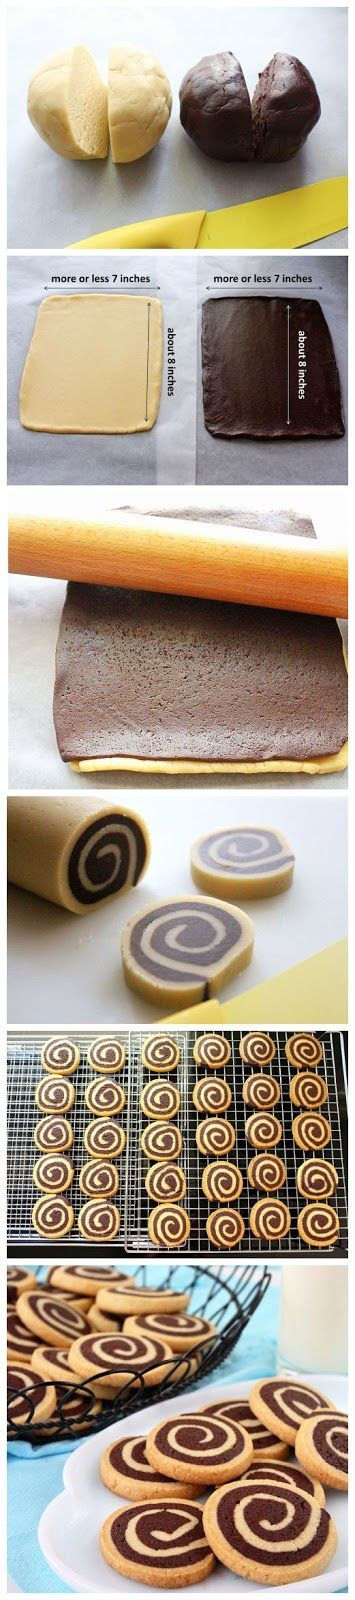 Basic chocolate pinwheel cookies recipe chocolate for 4 tablespoons of butter